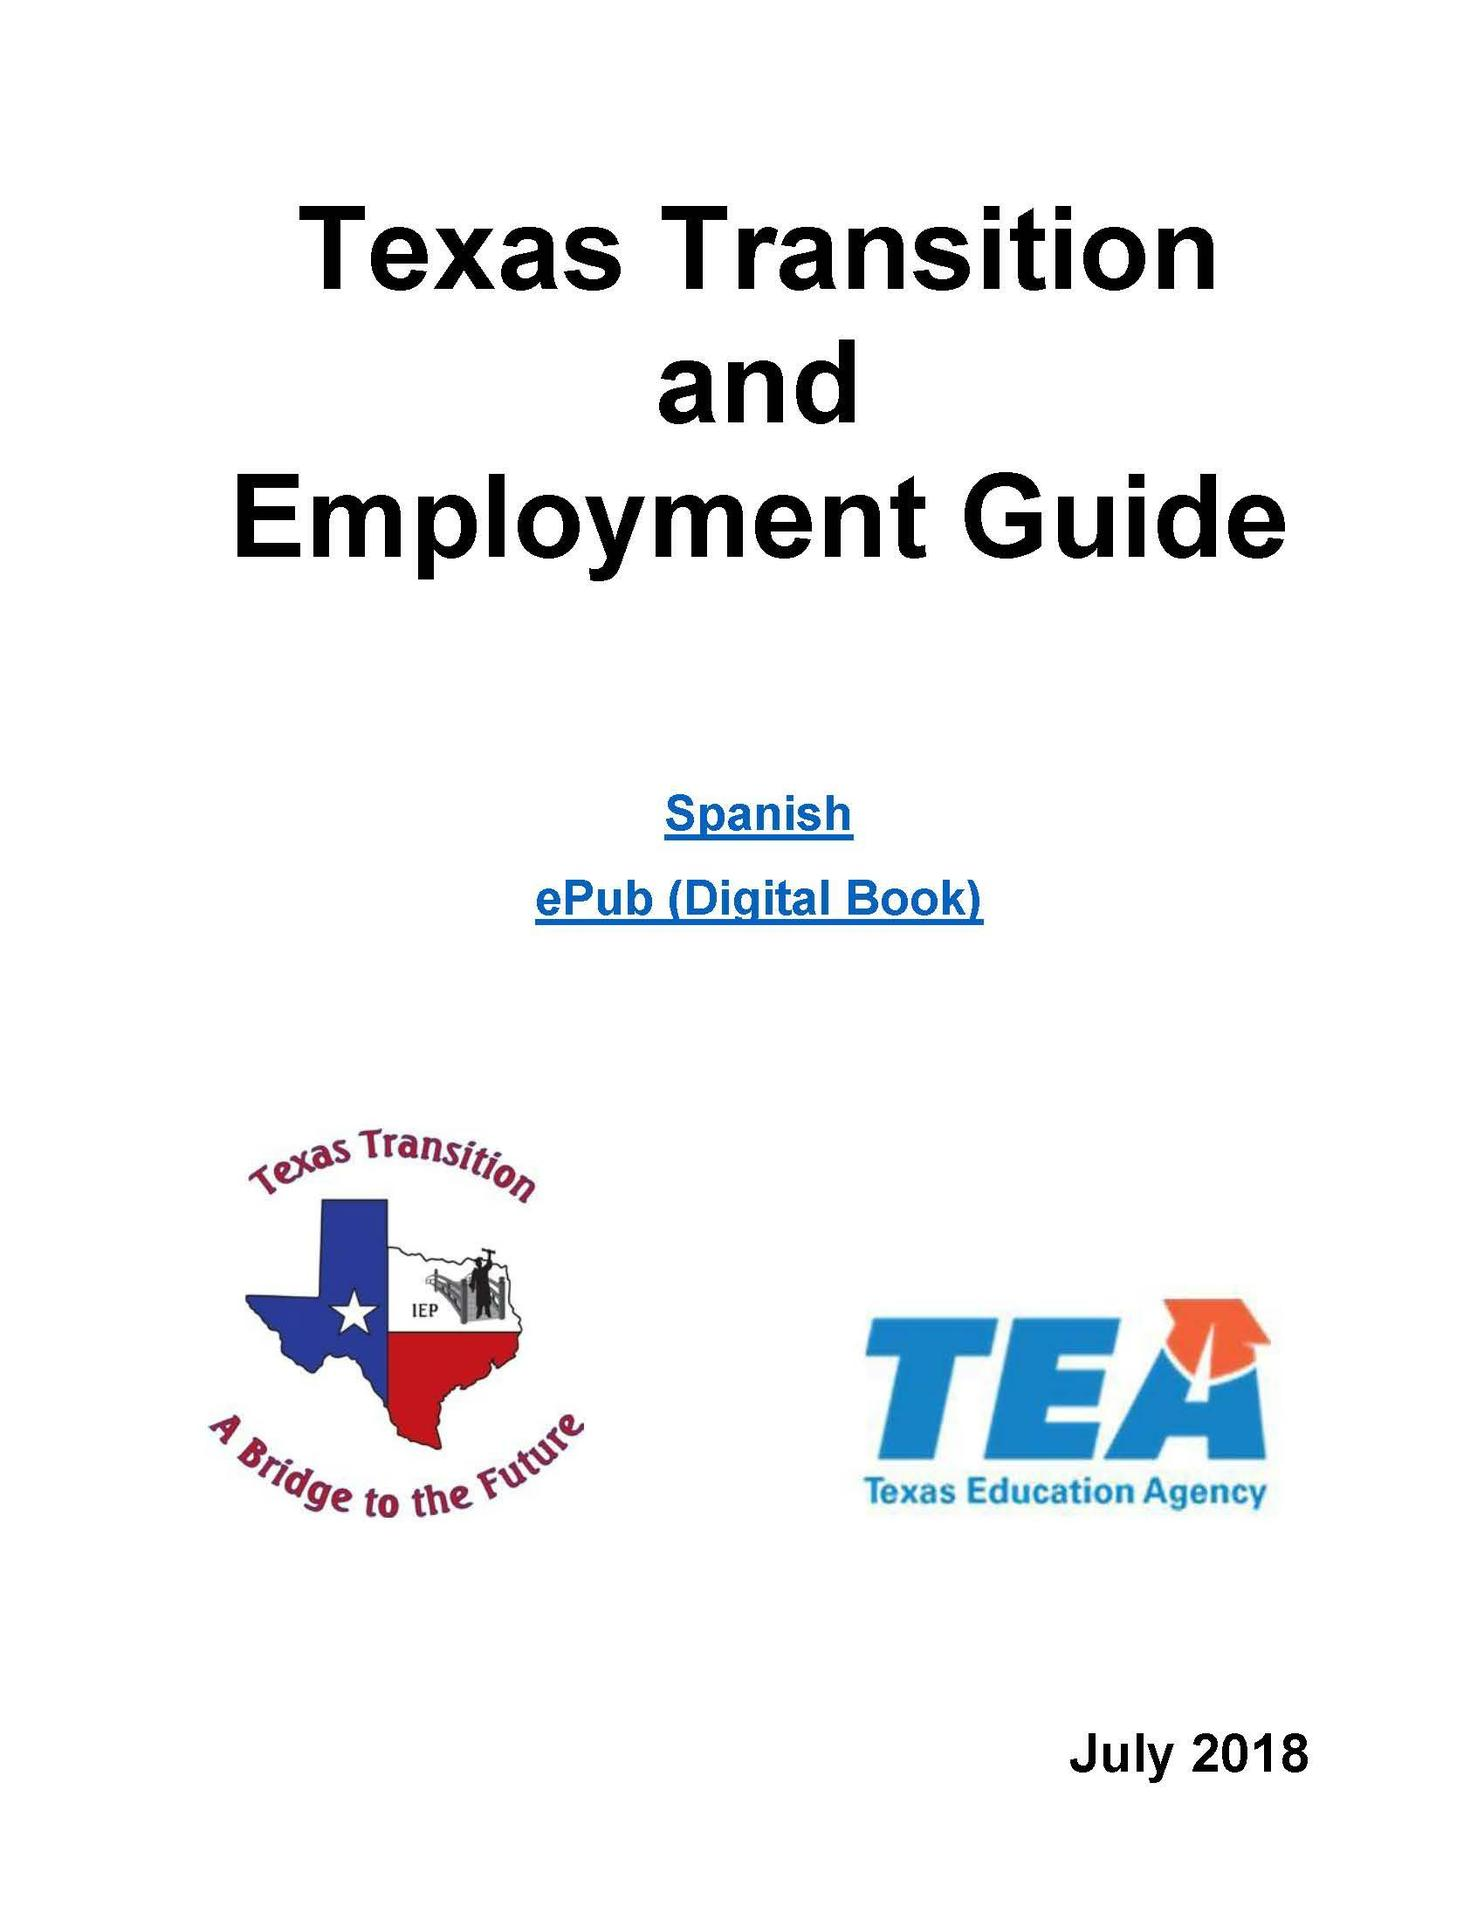 Texas Transition and Employment Guides